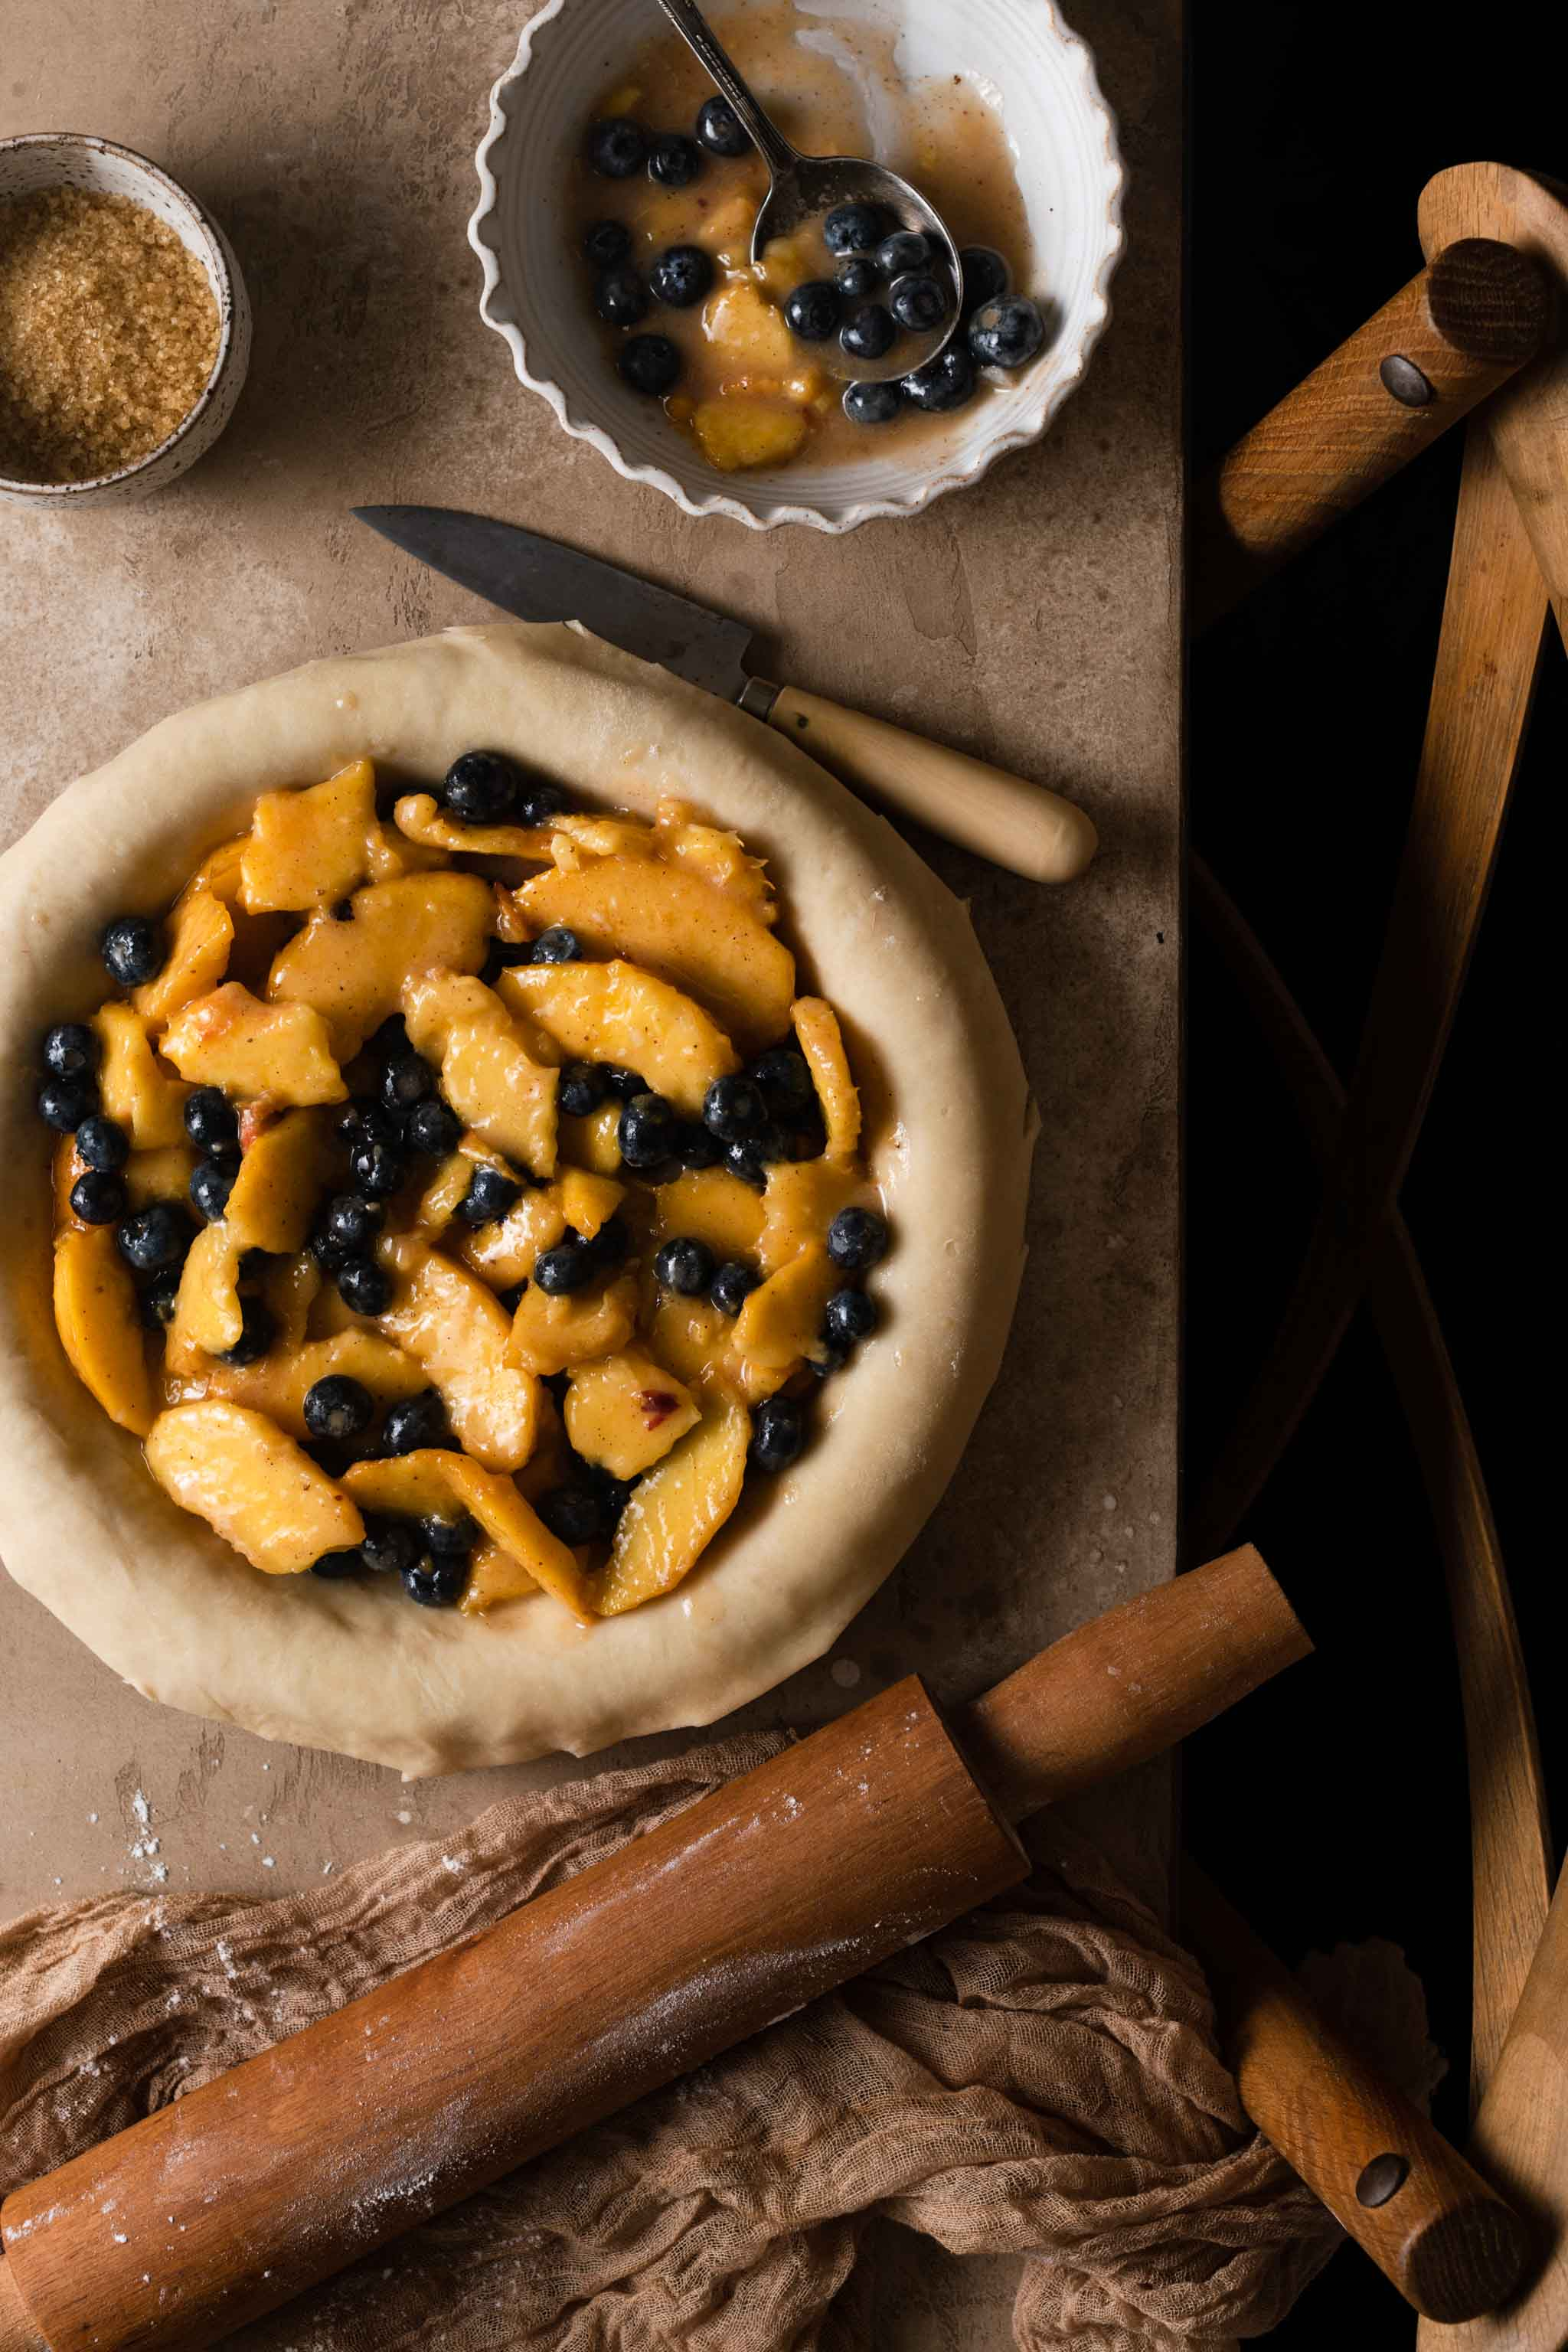 Peach and Blueberry Pie filling in a pie crust